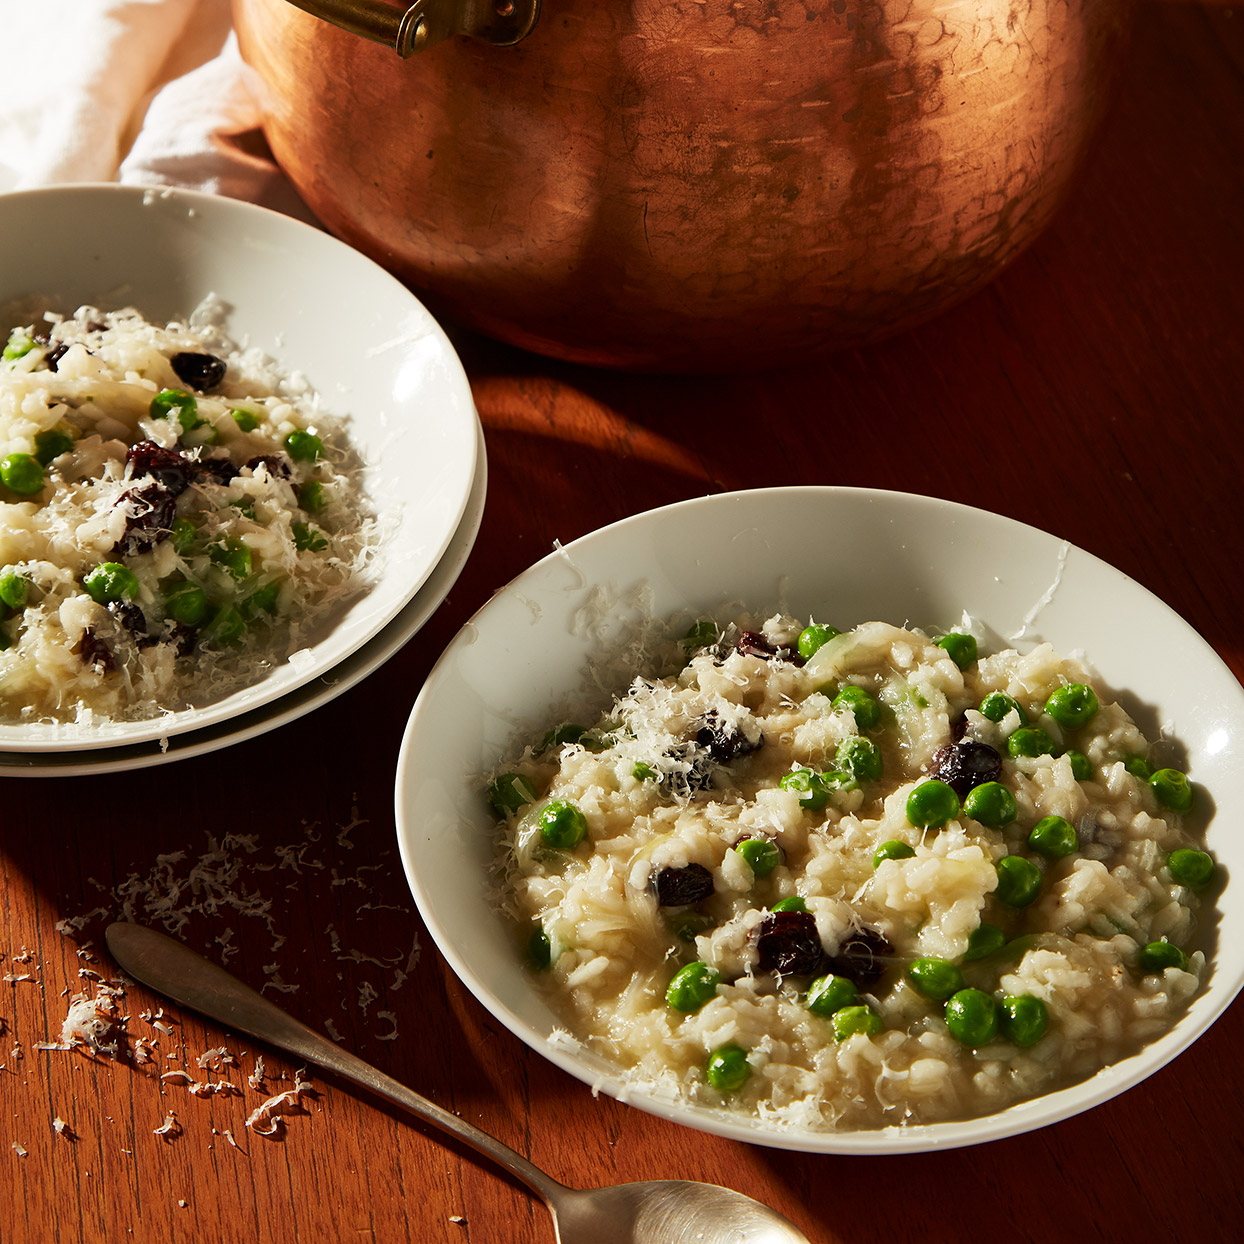 Italian Rice & Peas (Risi e Bisi) Trusted Brands